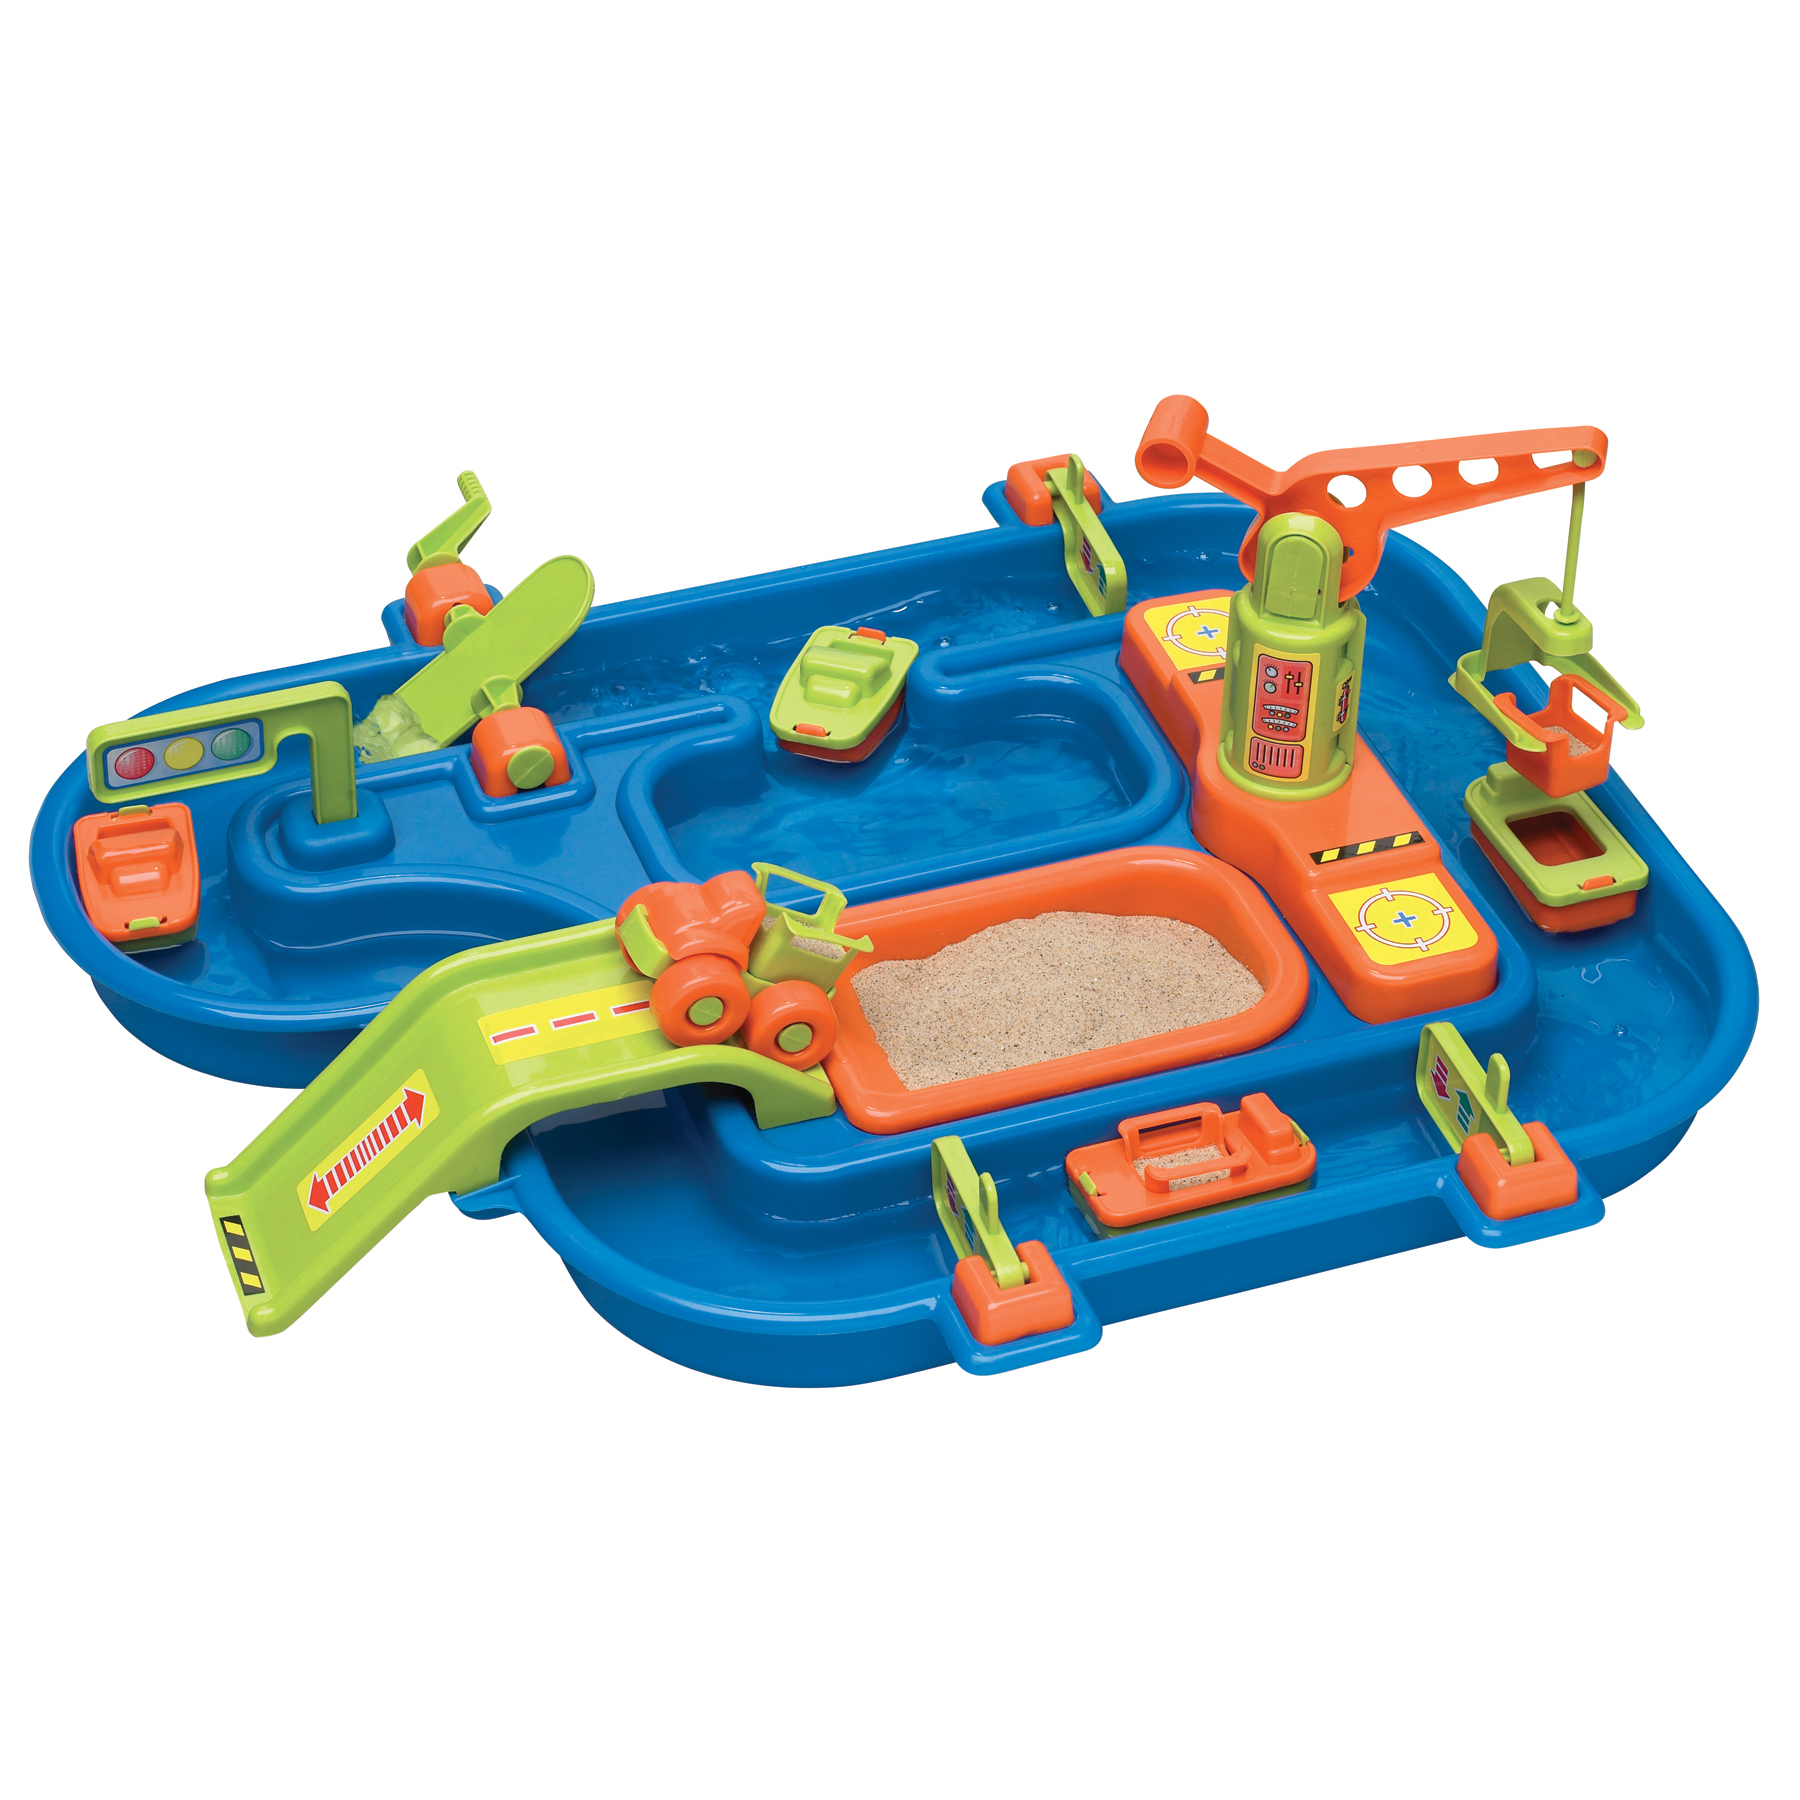 American Plastic Toys Inc Sand & Water Play Set Review